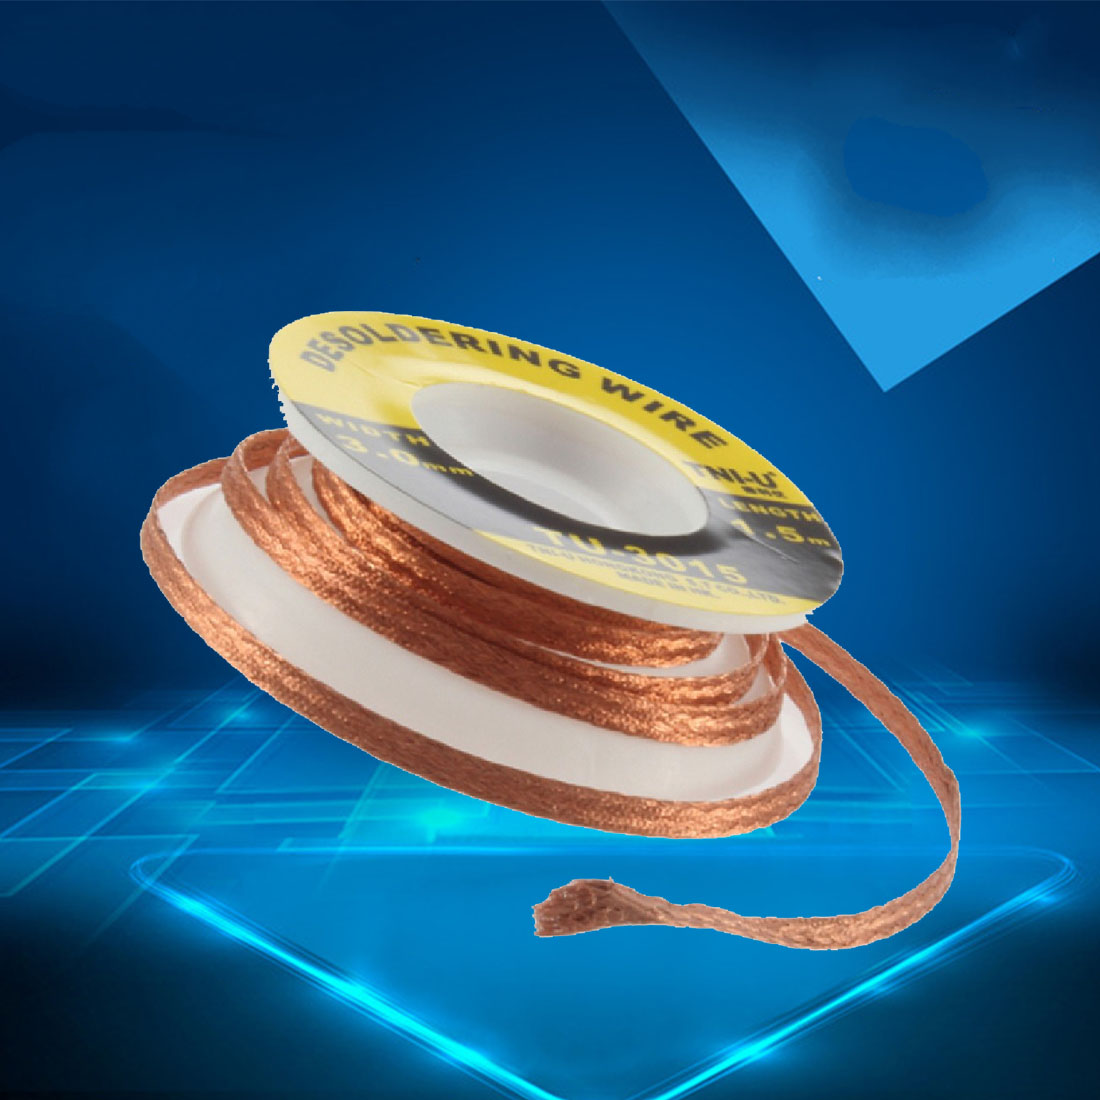 Hot 1pcs 1.5M 3.0mm Thickness Welding Wires Practical Desoldering Braid Solder Remover Wick High Quality